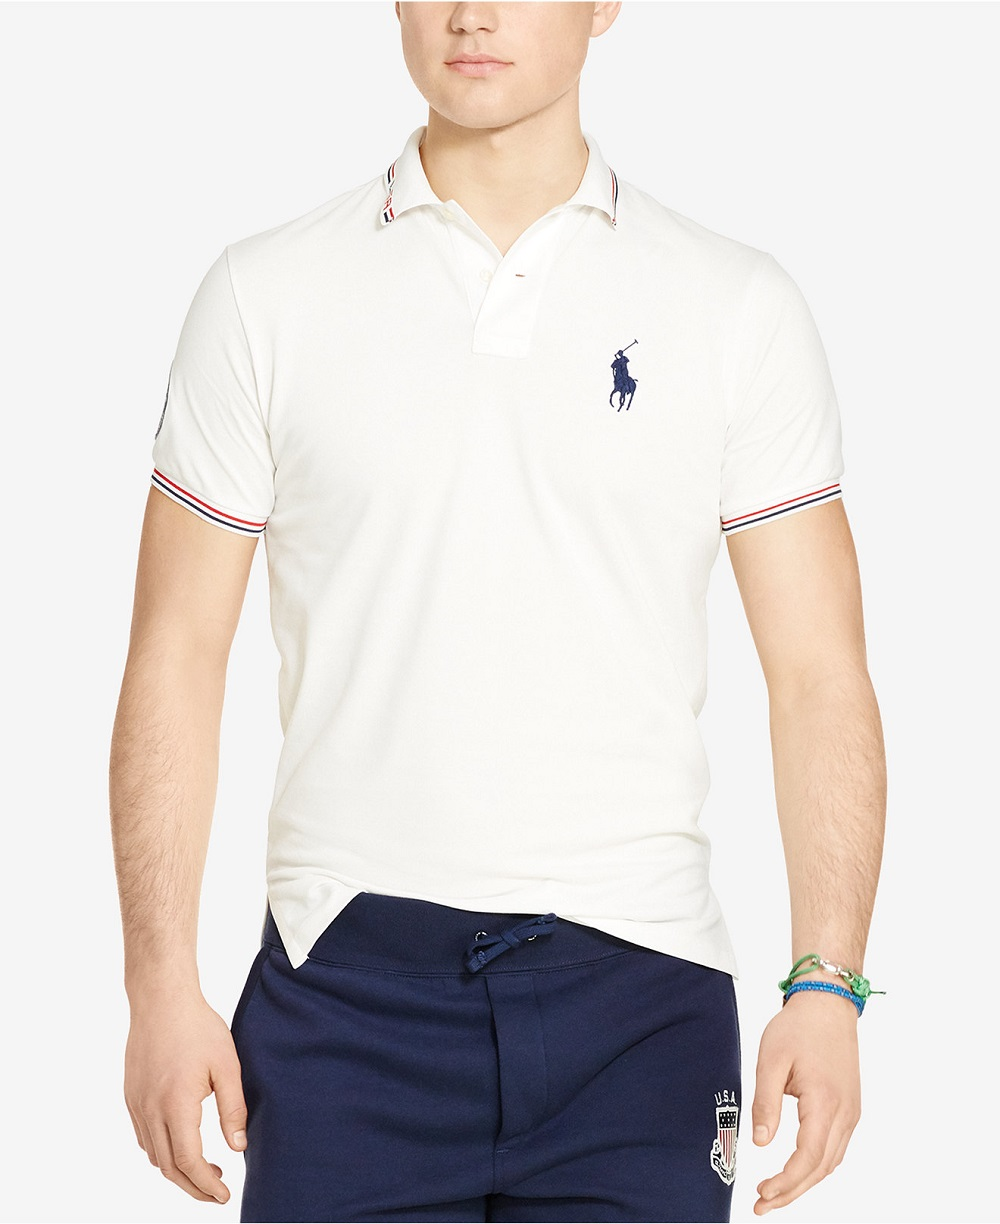 Áo Thun Nam Polo Ralph Lauren Team